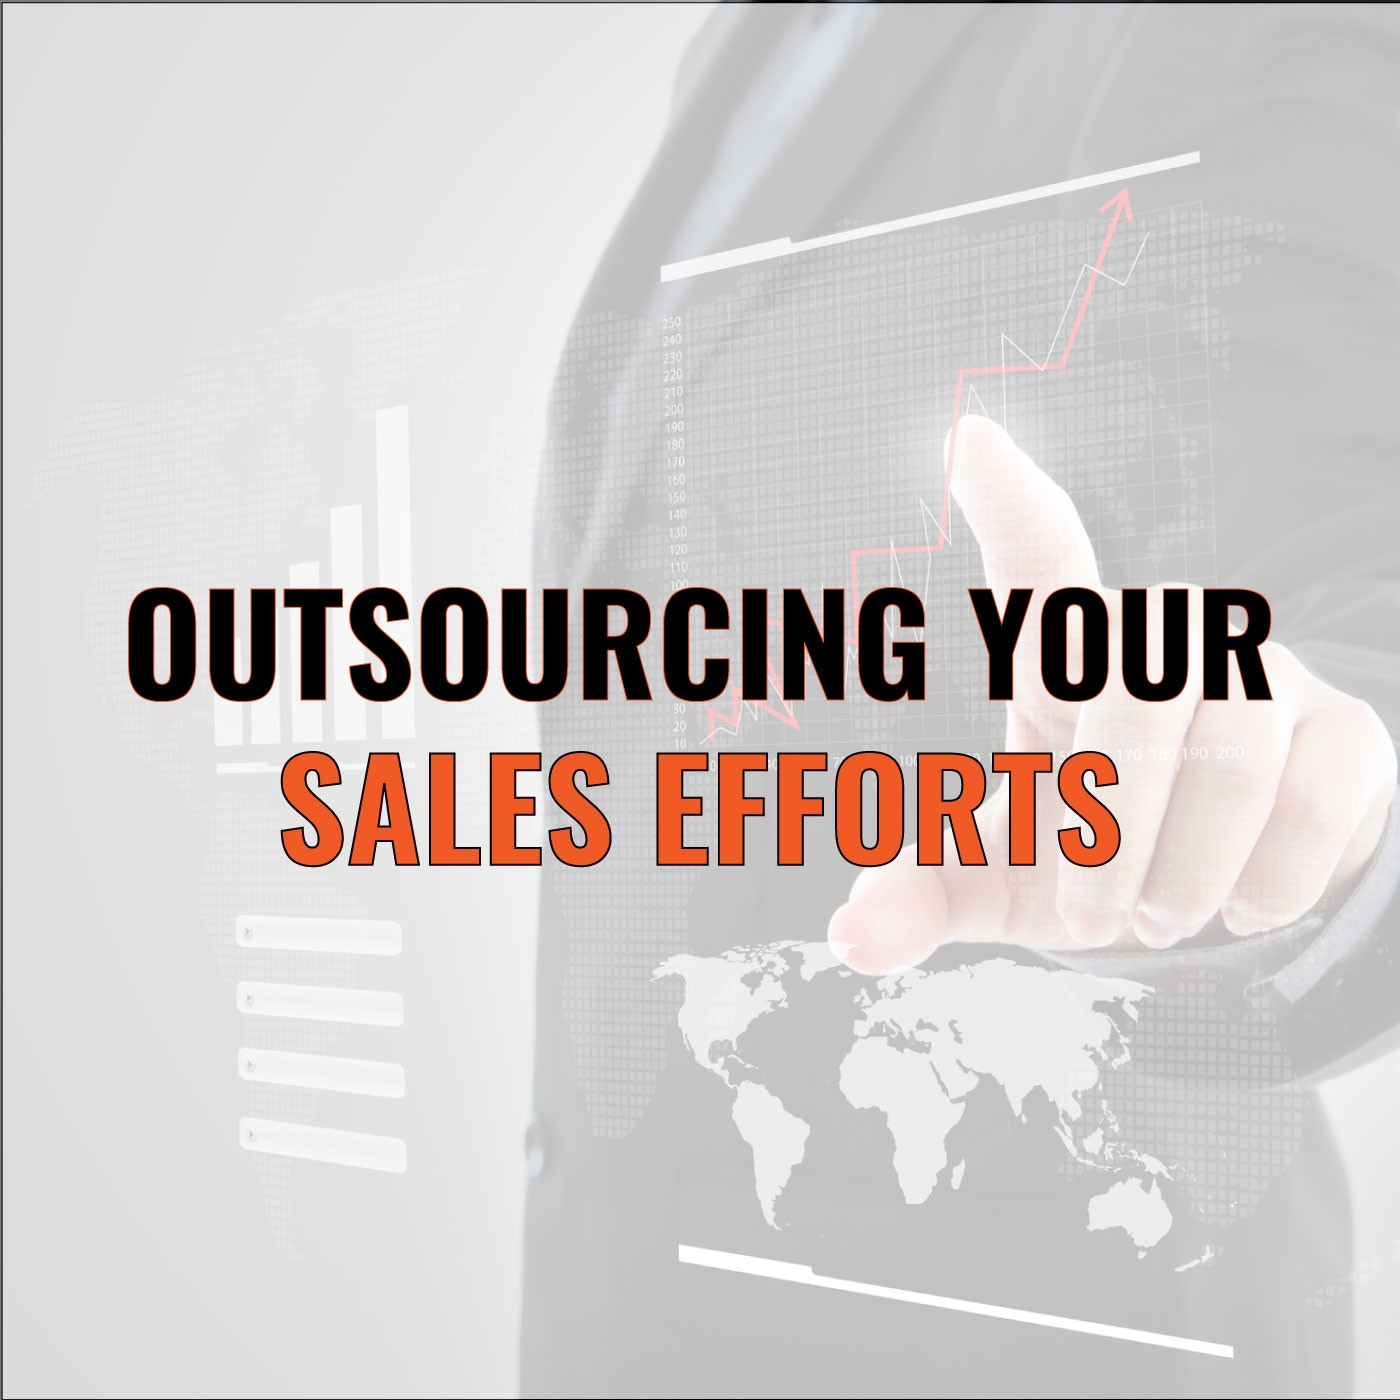 Todd Handy on Outsourcing Your Sales Efforts